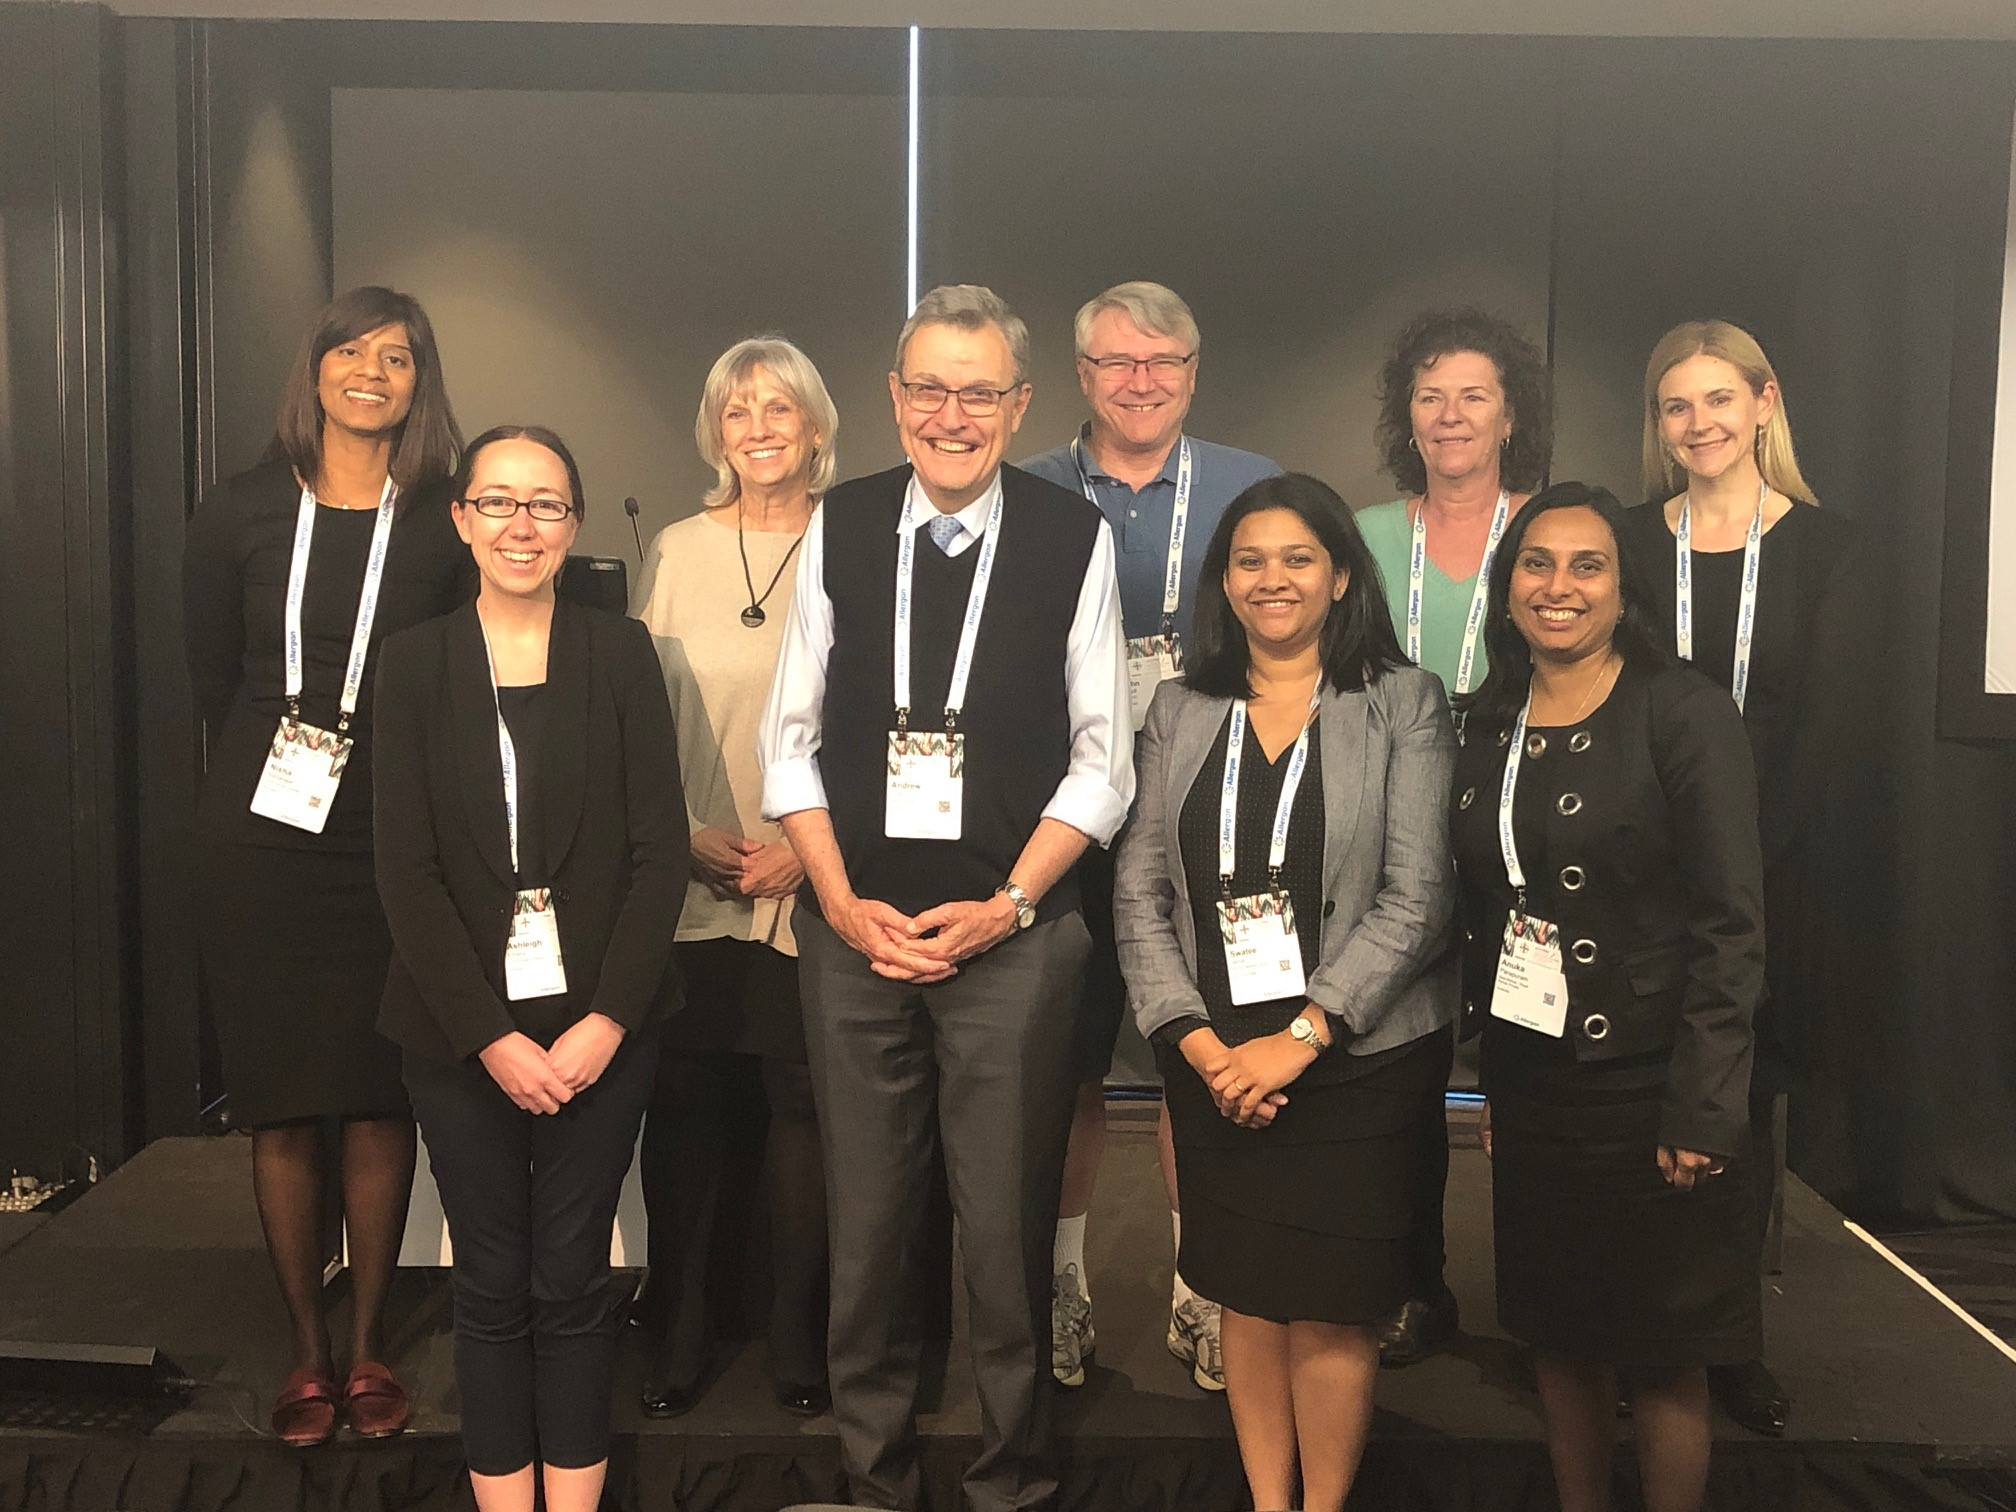 Members of the Cancer SIG with colleagues in New Zealand